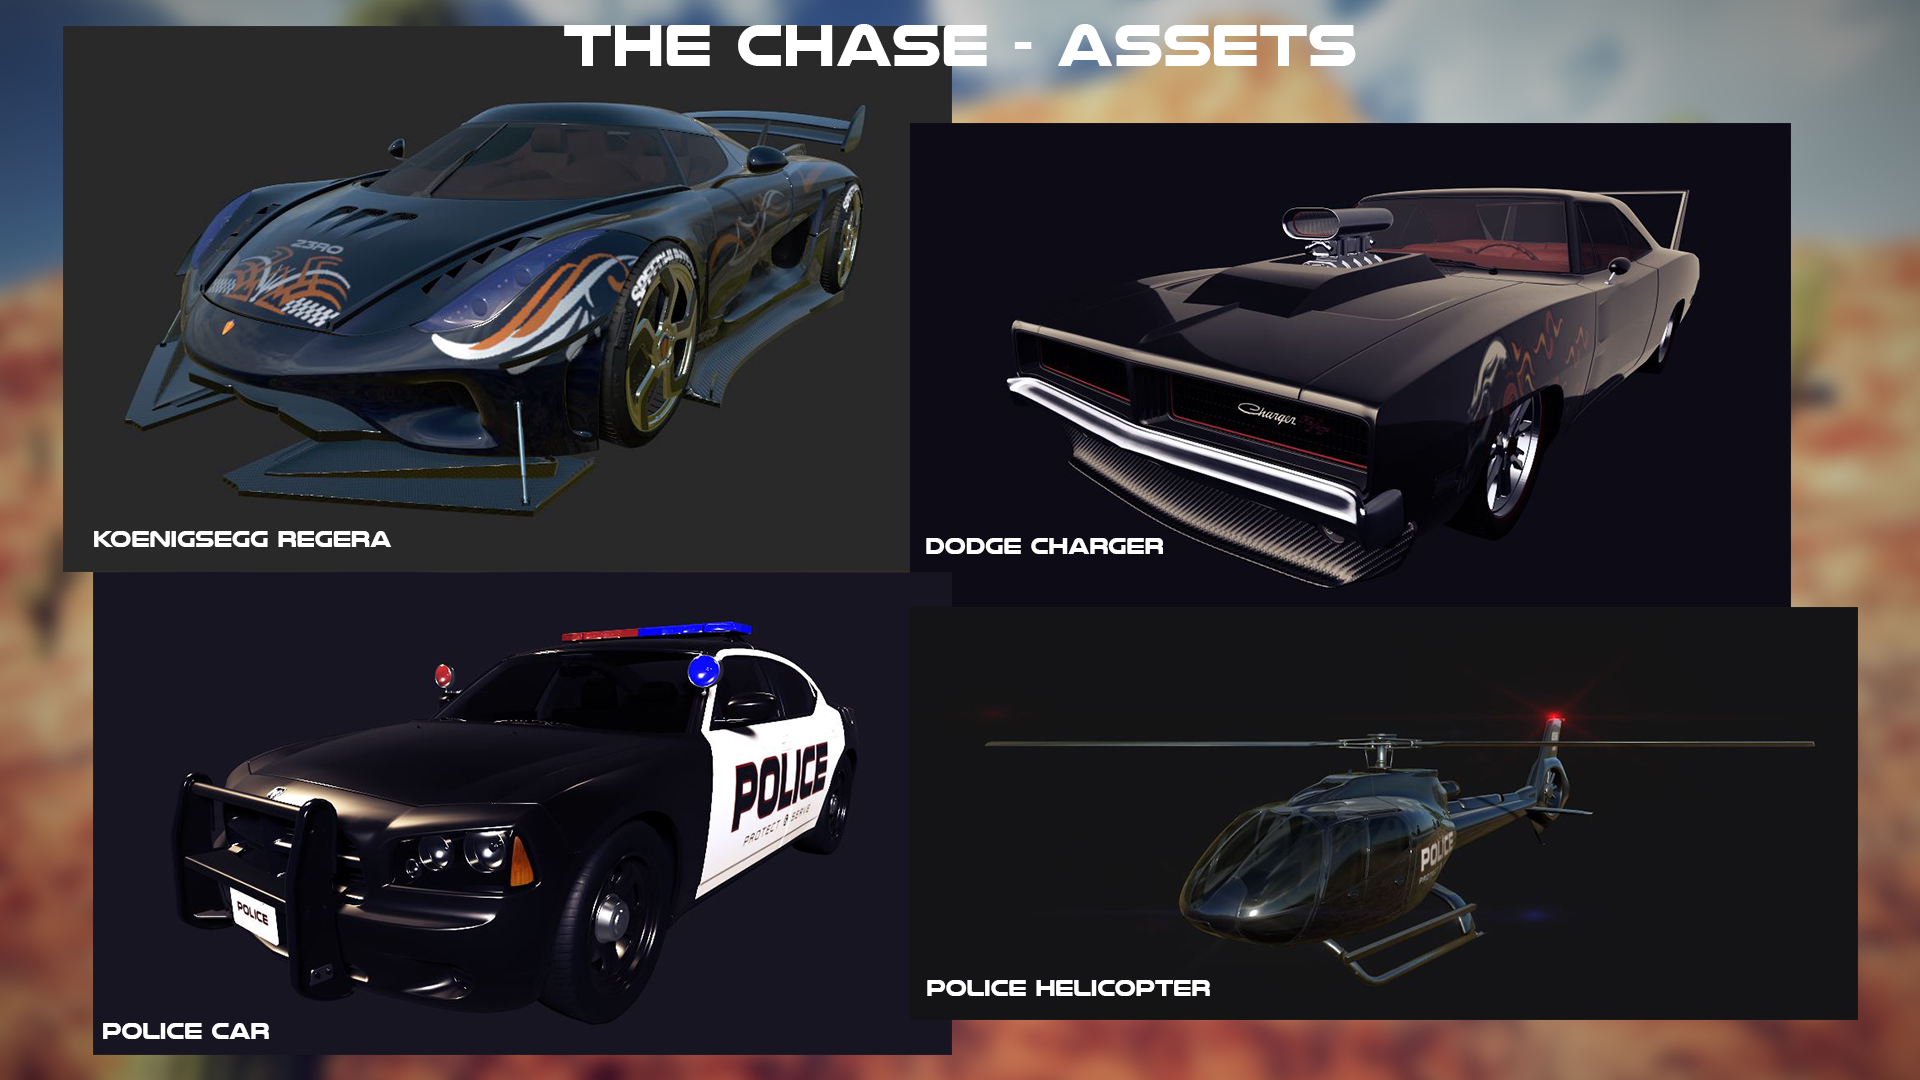 The Chase - Hum3d Car Render Challange 2019